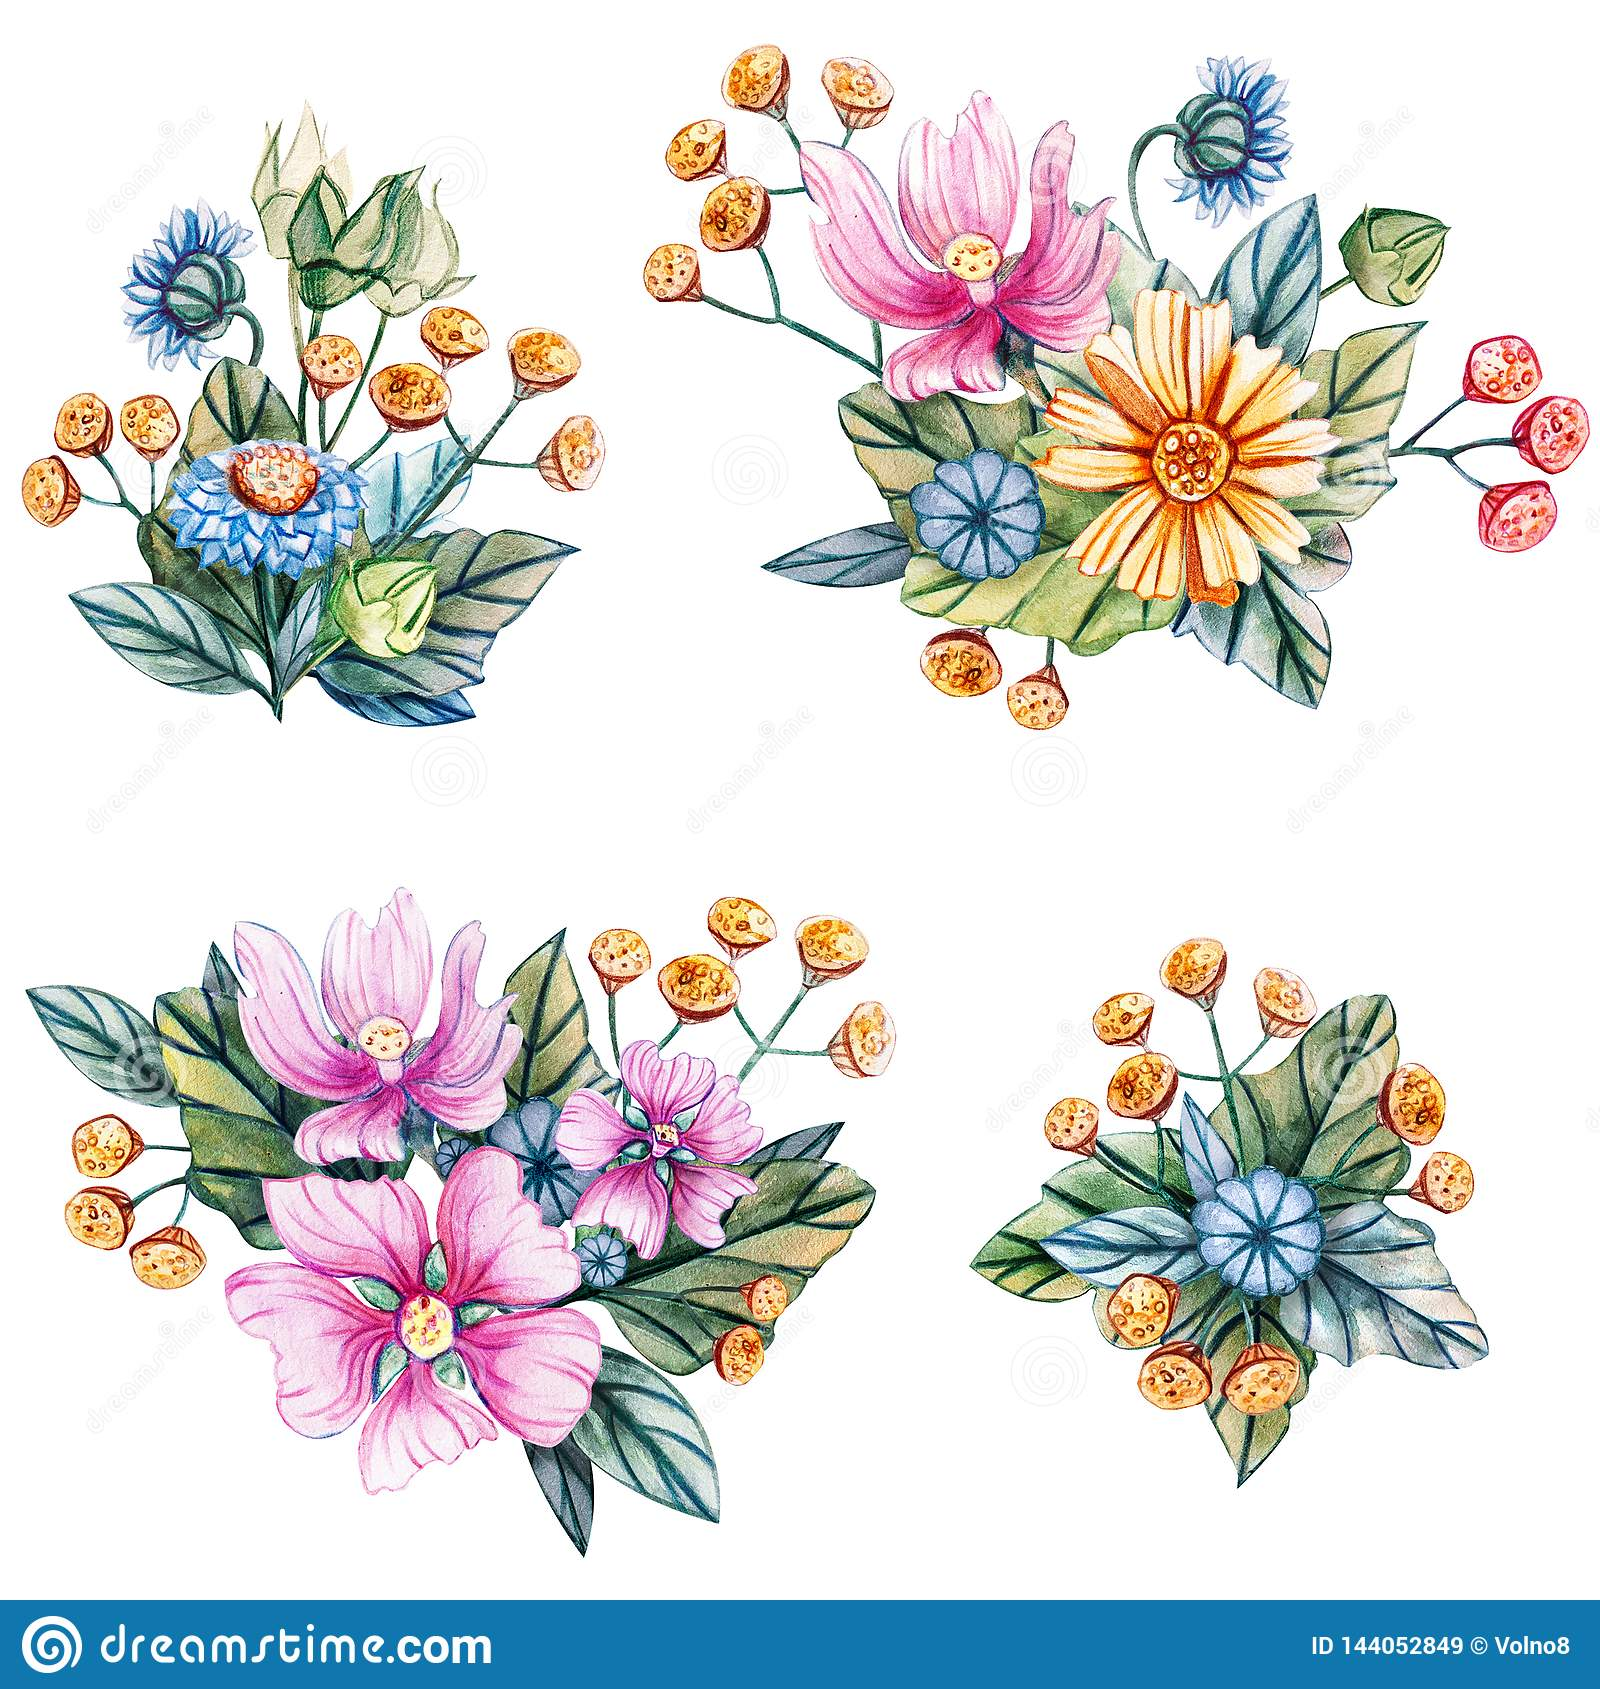 Watercolor illustration with bouquets of wildflowers